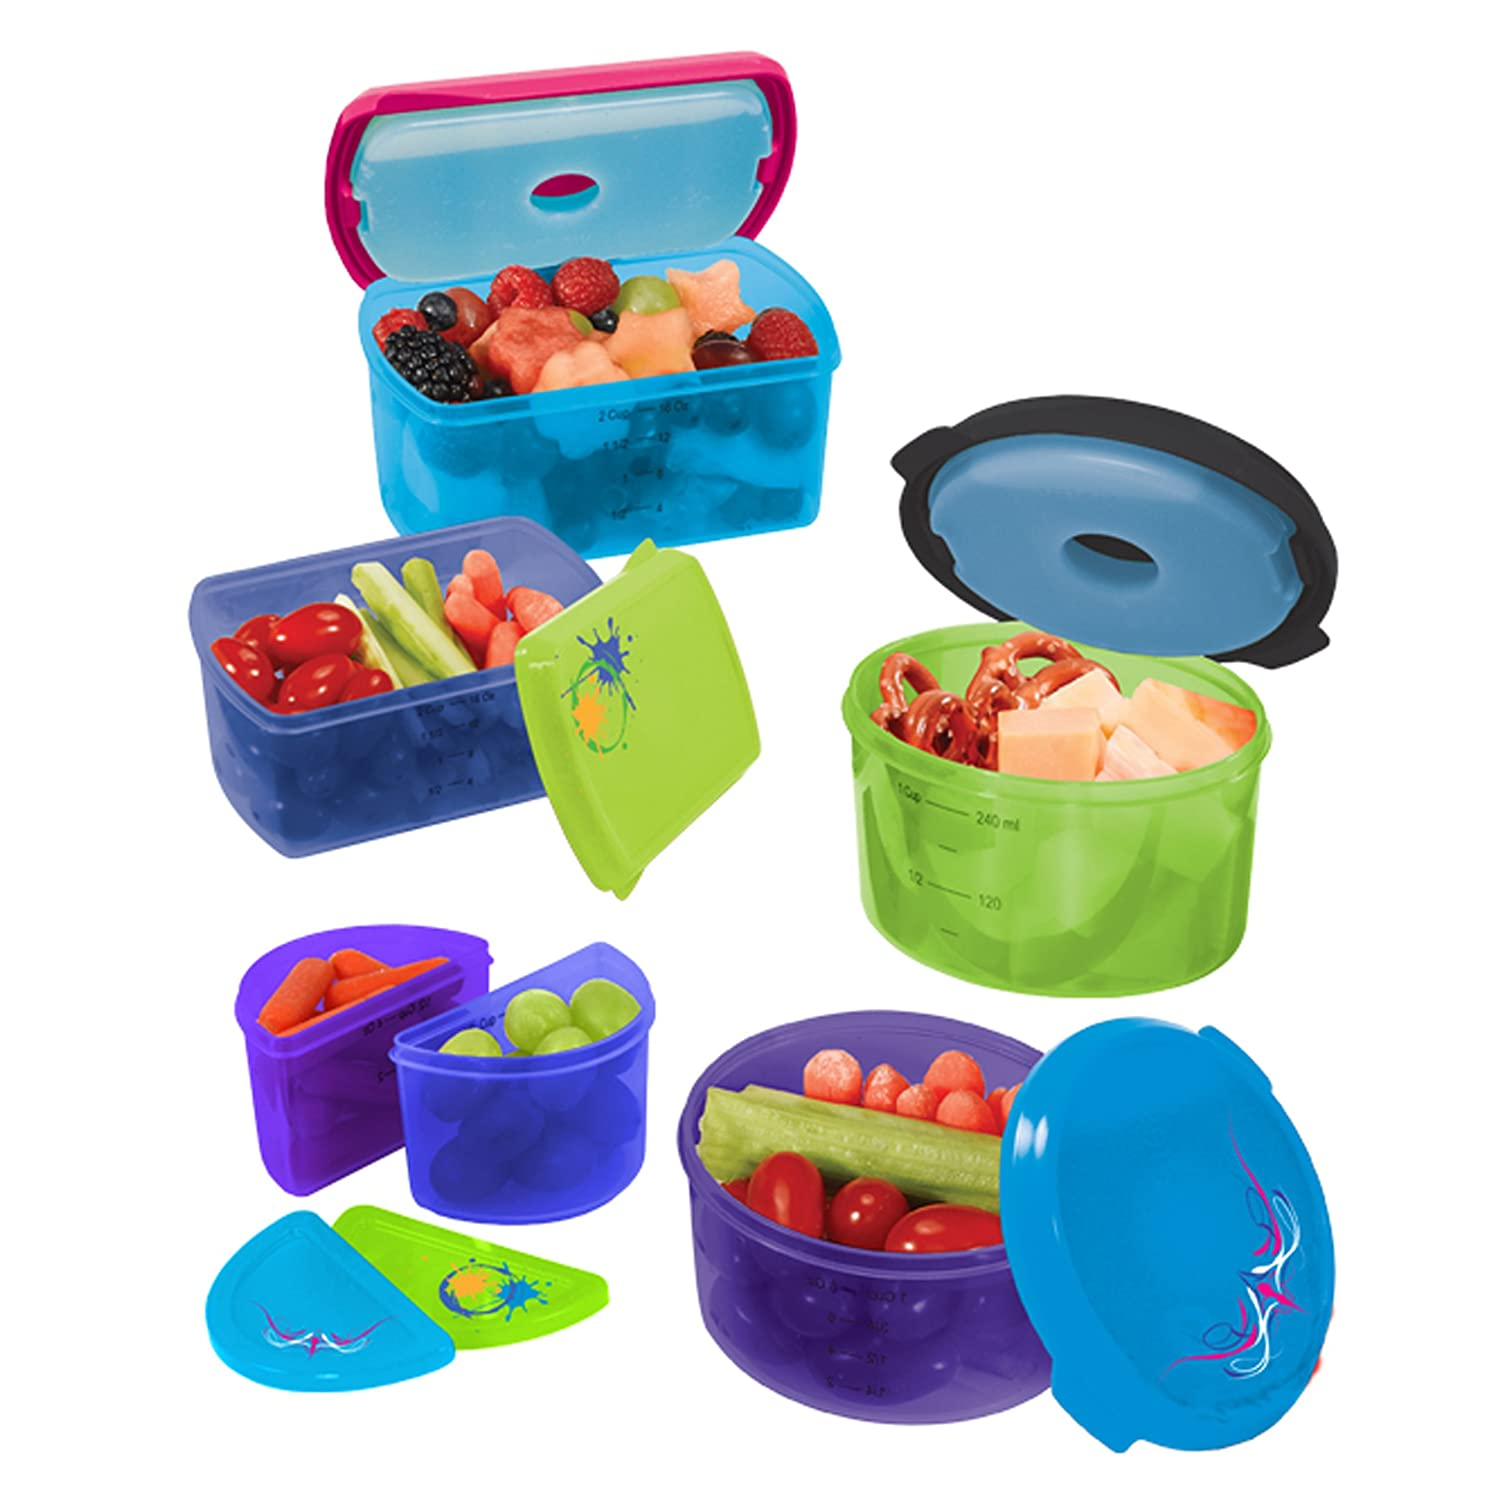 fit fresh kids 14 set reusable lunch container kit w ice pack children school ebay. Black Bedroom Furniture Sets. Home Design Ideas